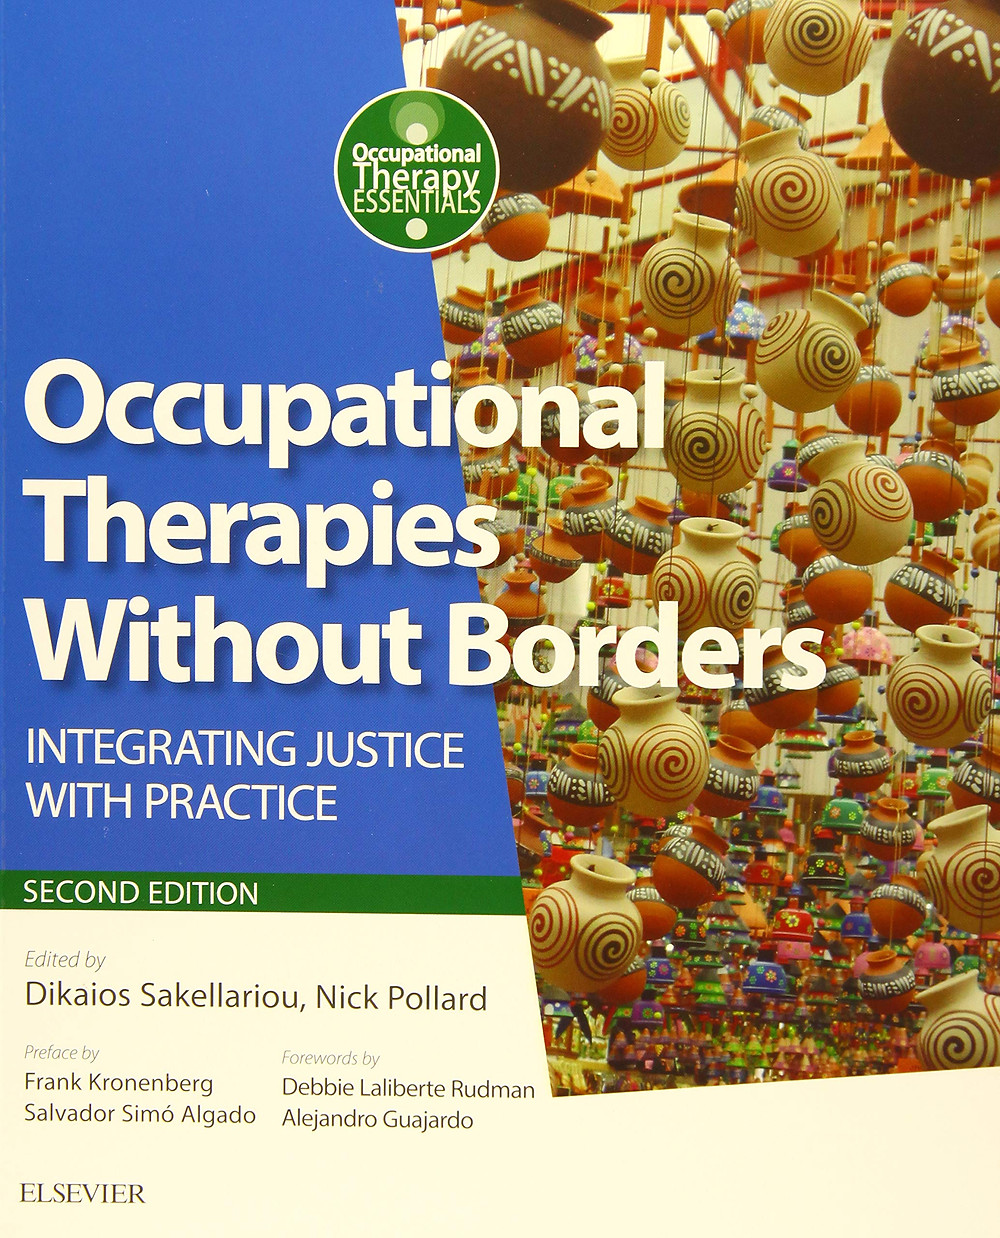 Occupational Therapies Without Borders: Integrating Justice With Practice, By Dikaios Sakellariou and Nick Pollard